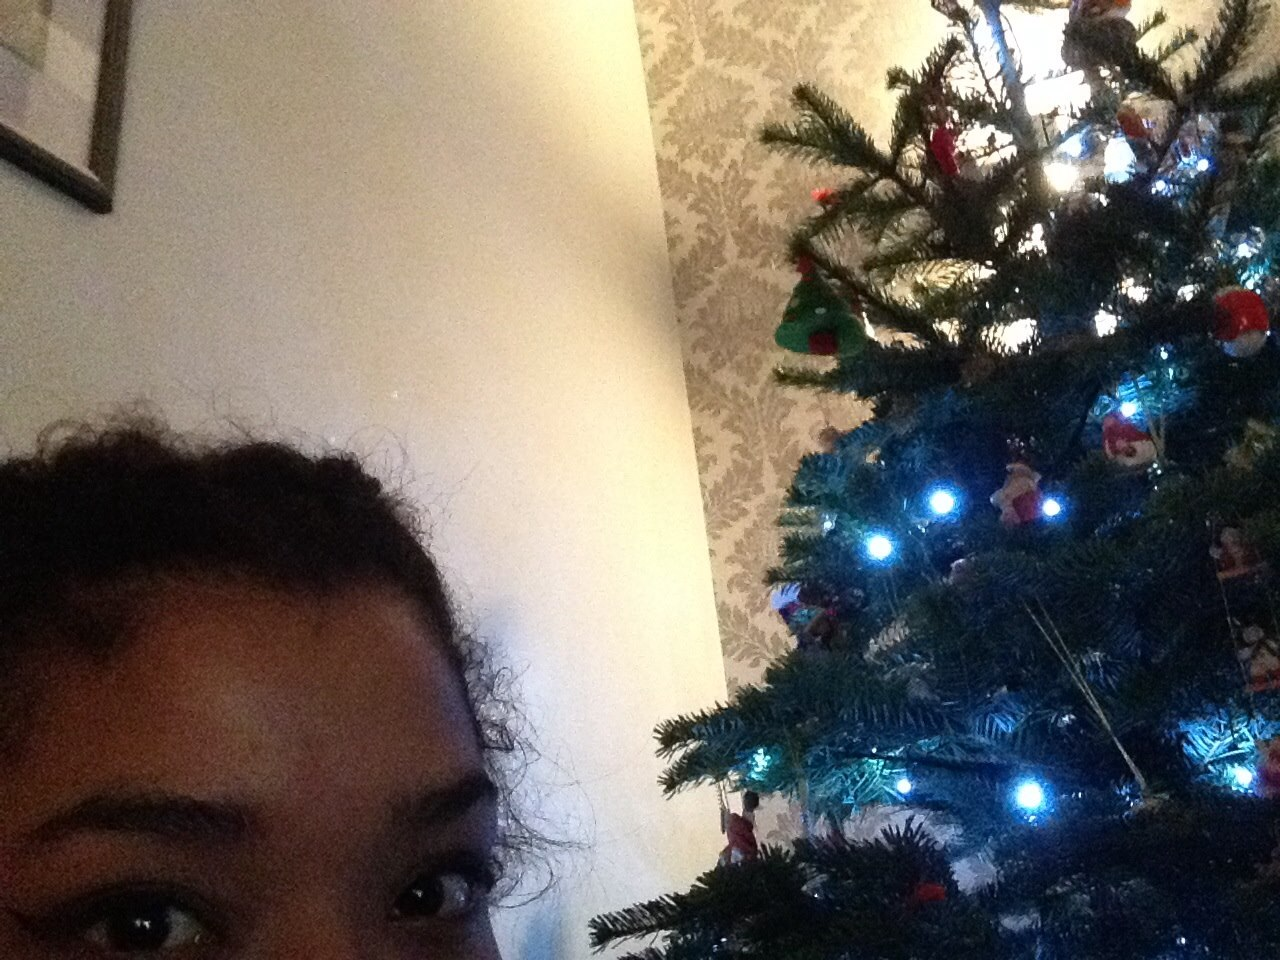 Ellie: If you are strictly herbivore and find yourself hungry on Christmas day, eat your tree for a nutritious meal.